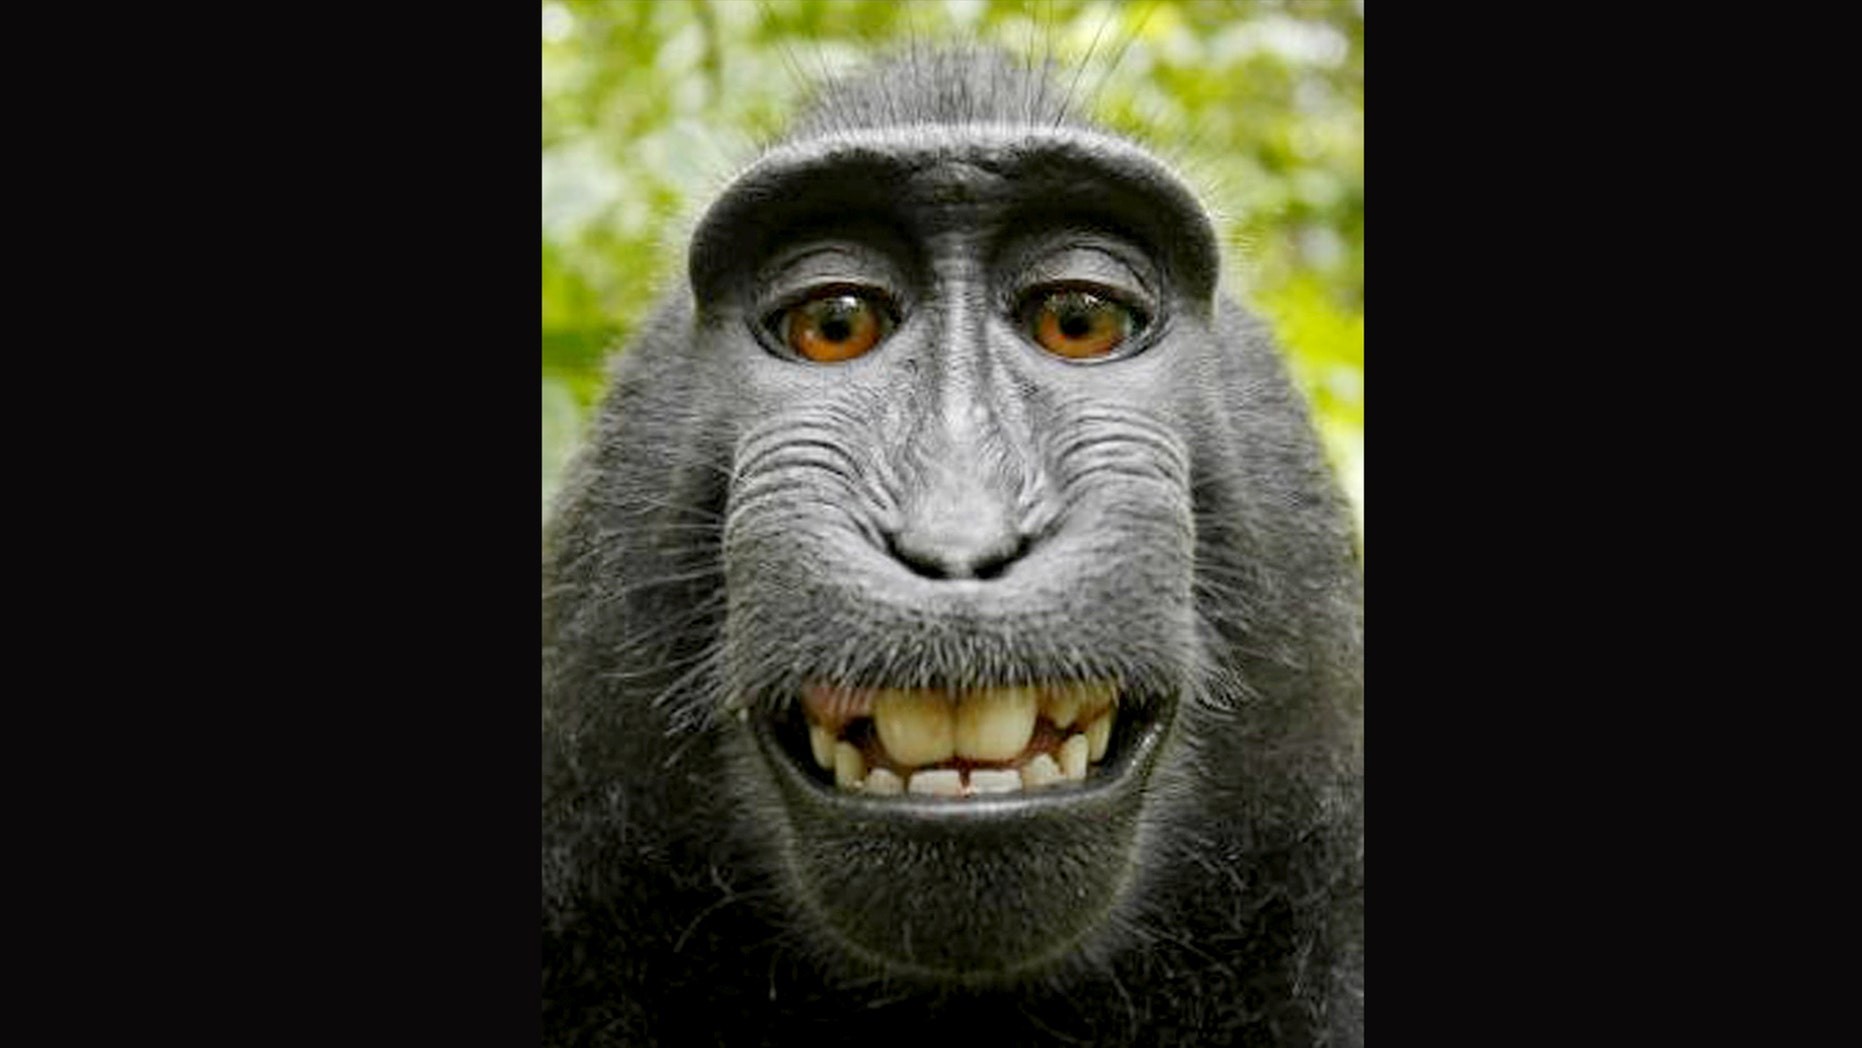 A settlement was made Monday in federal appeals court about a lawsuit over who owns the copyright to selfie photographs taken by a monkey.